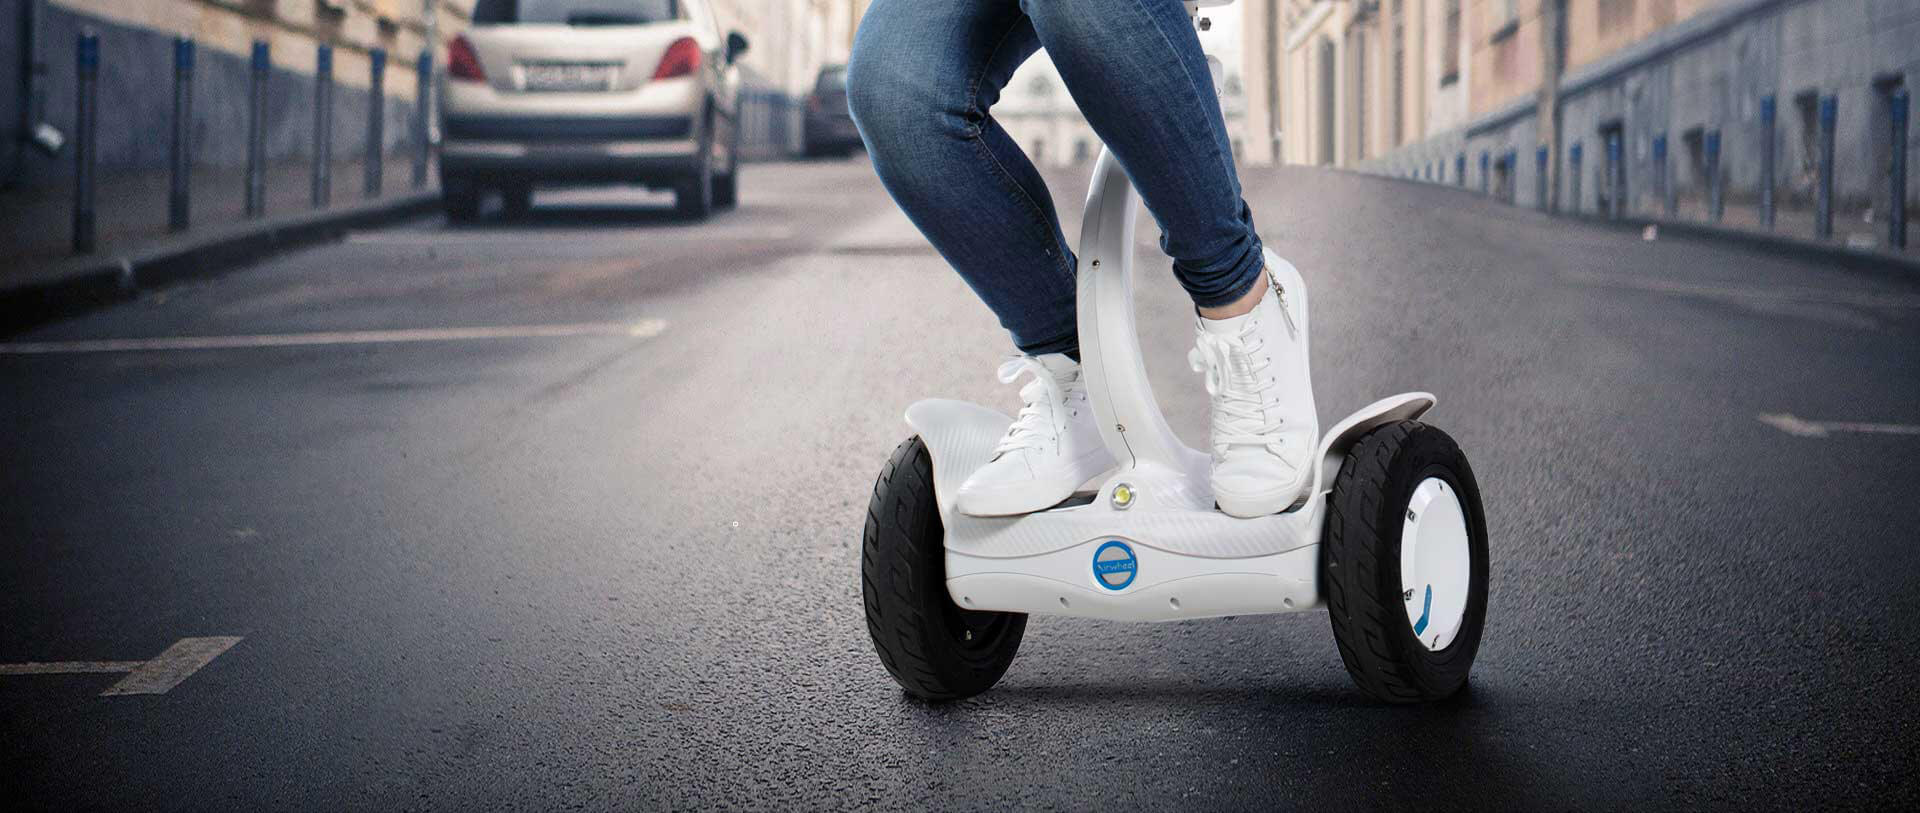 Airwheel saddle-equipped scooter